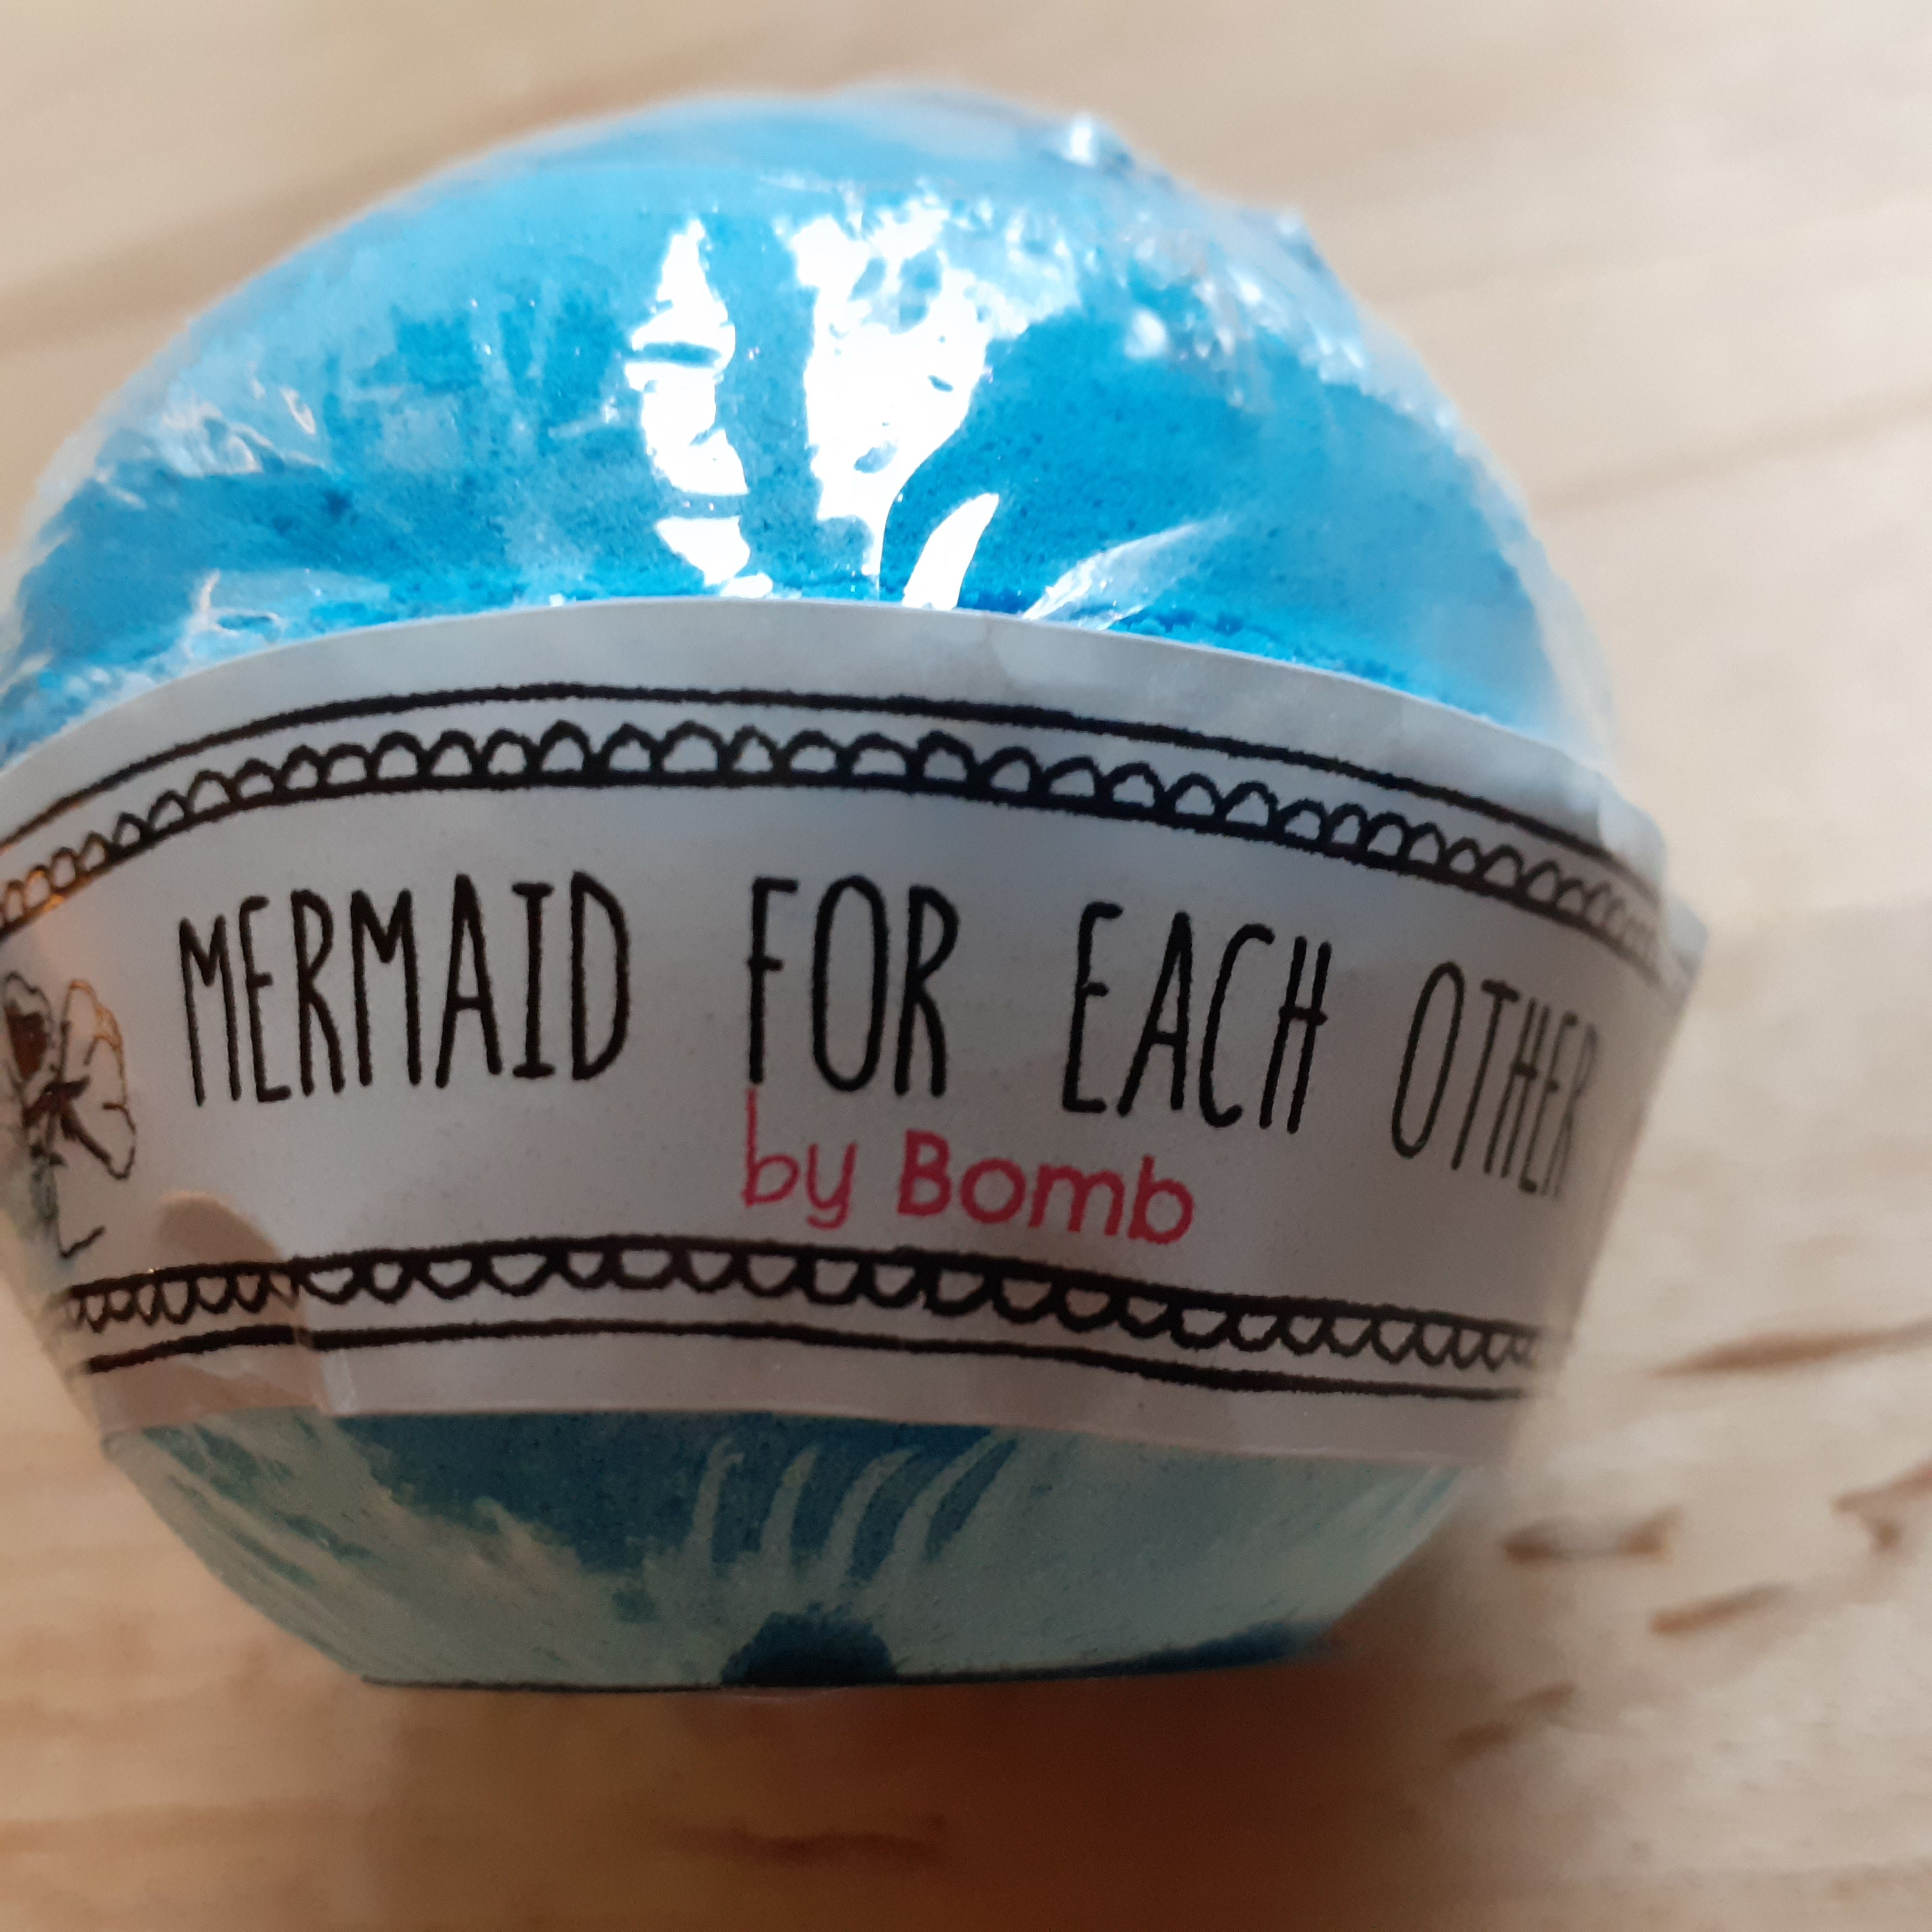 Mermaid for Each Other Bath Bomb - Luvit!